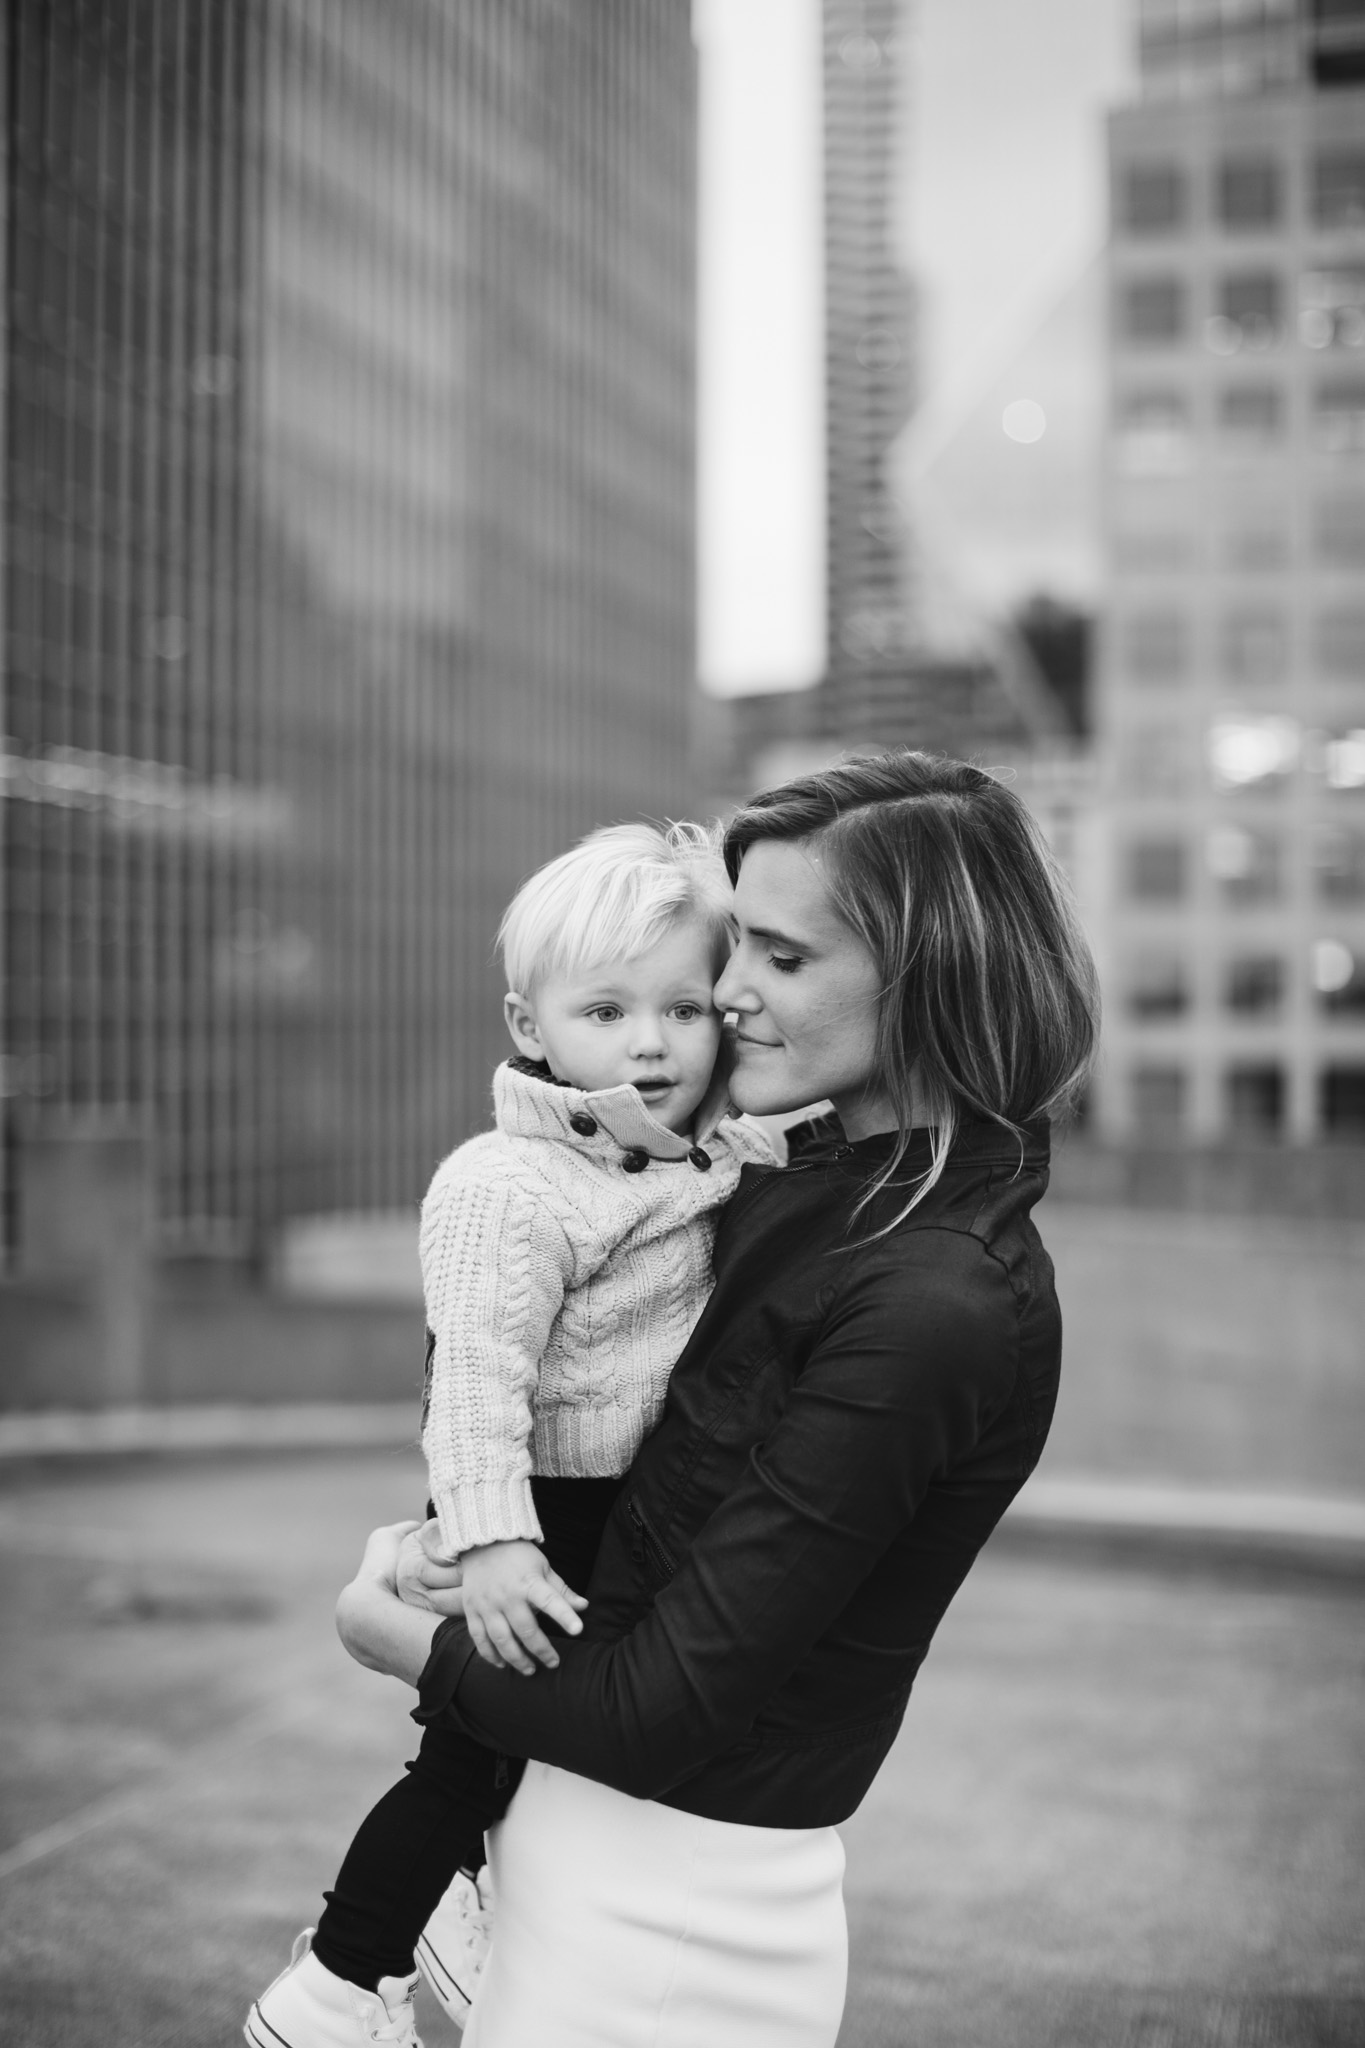 27seattle-family-photographer-catie-bergman-photography-pnw-newborn-portrait-lifestylephotography.jpg